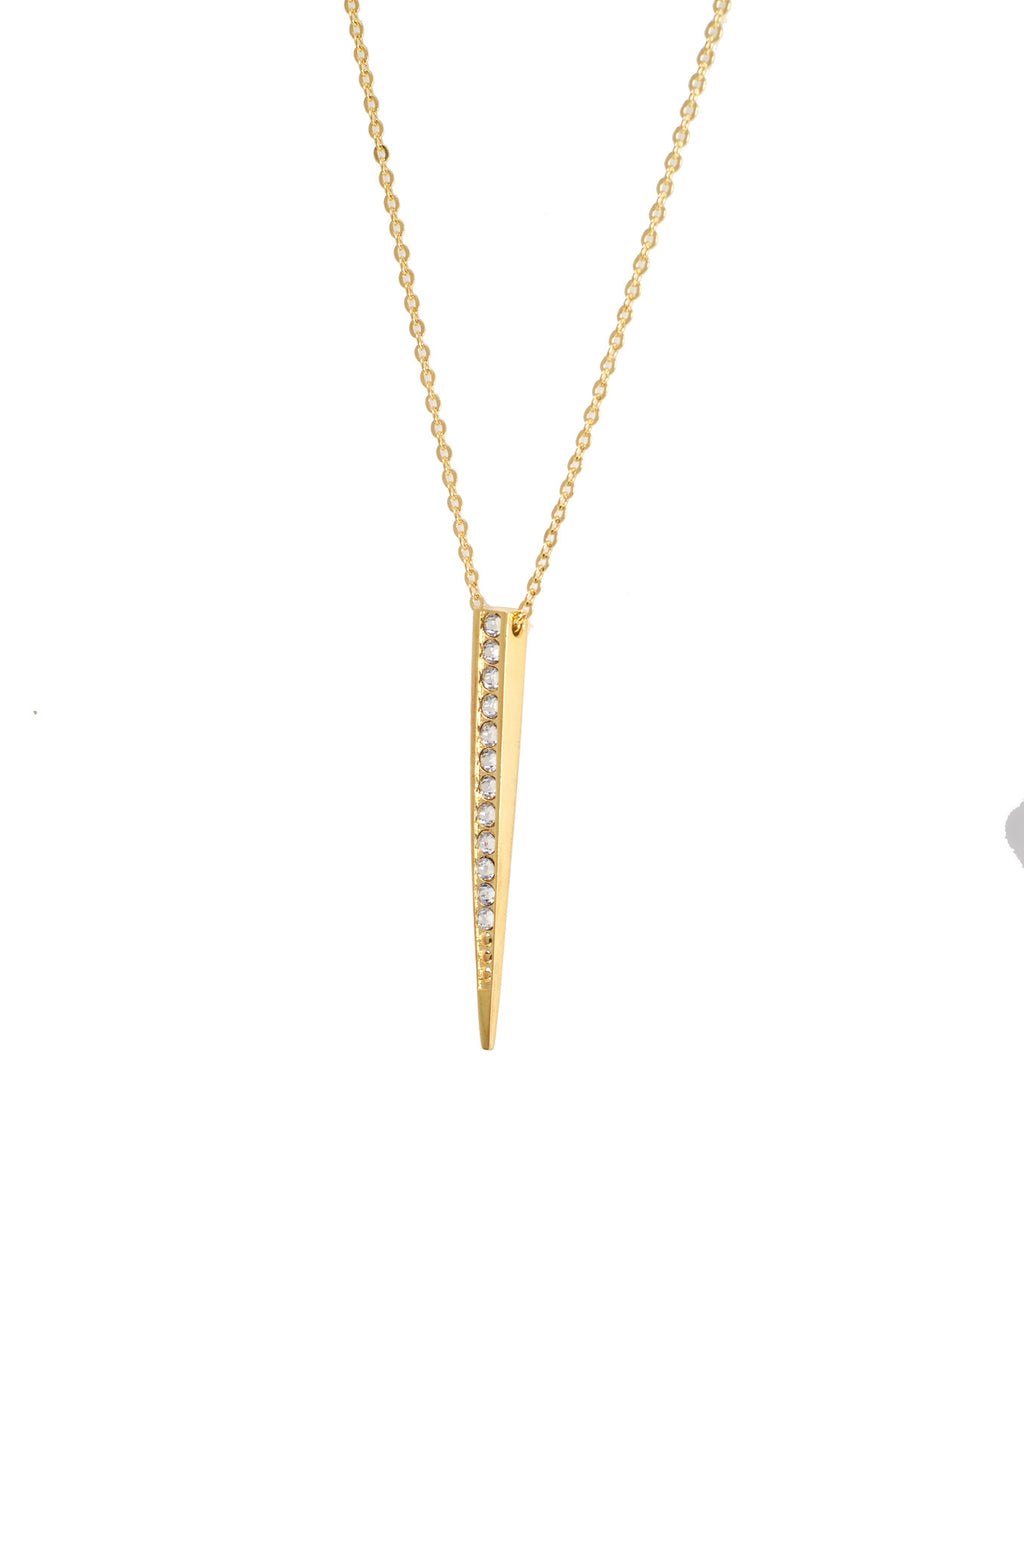 SINGLE SPIKE STONE NECKLACE - MAKKO